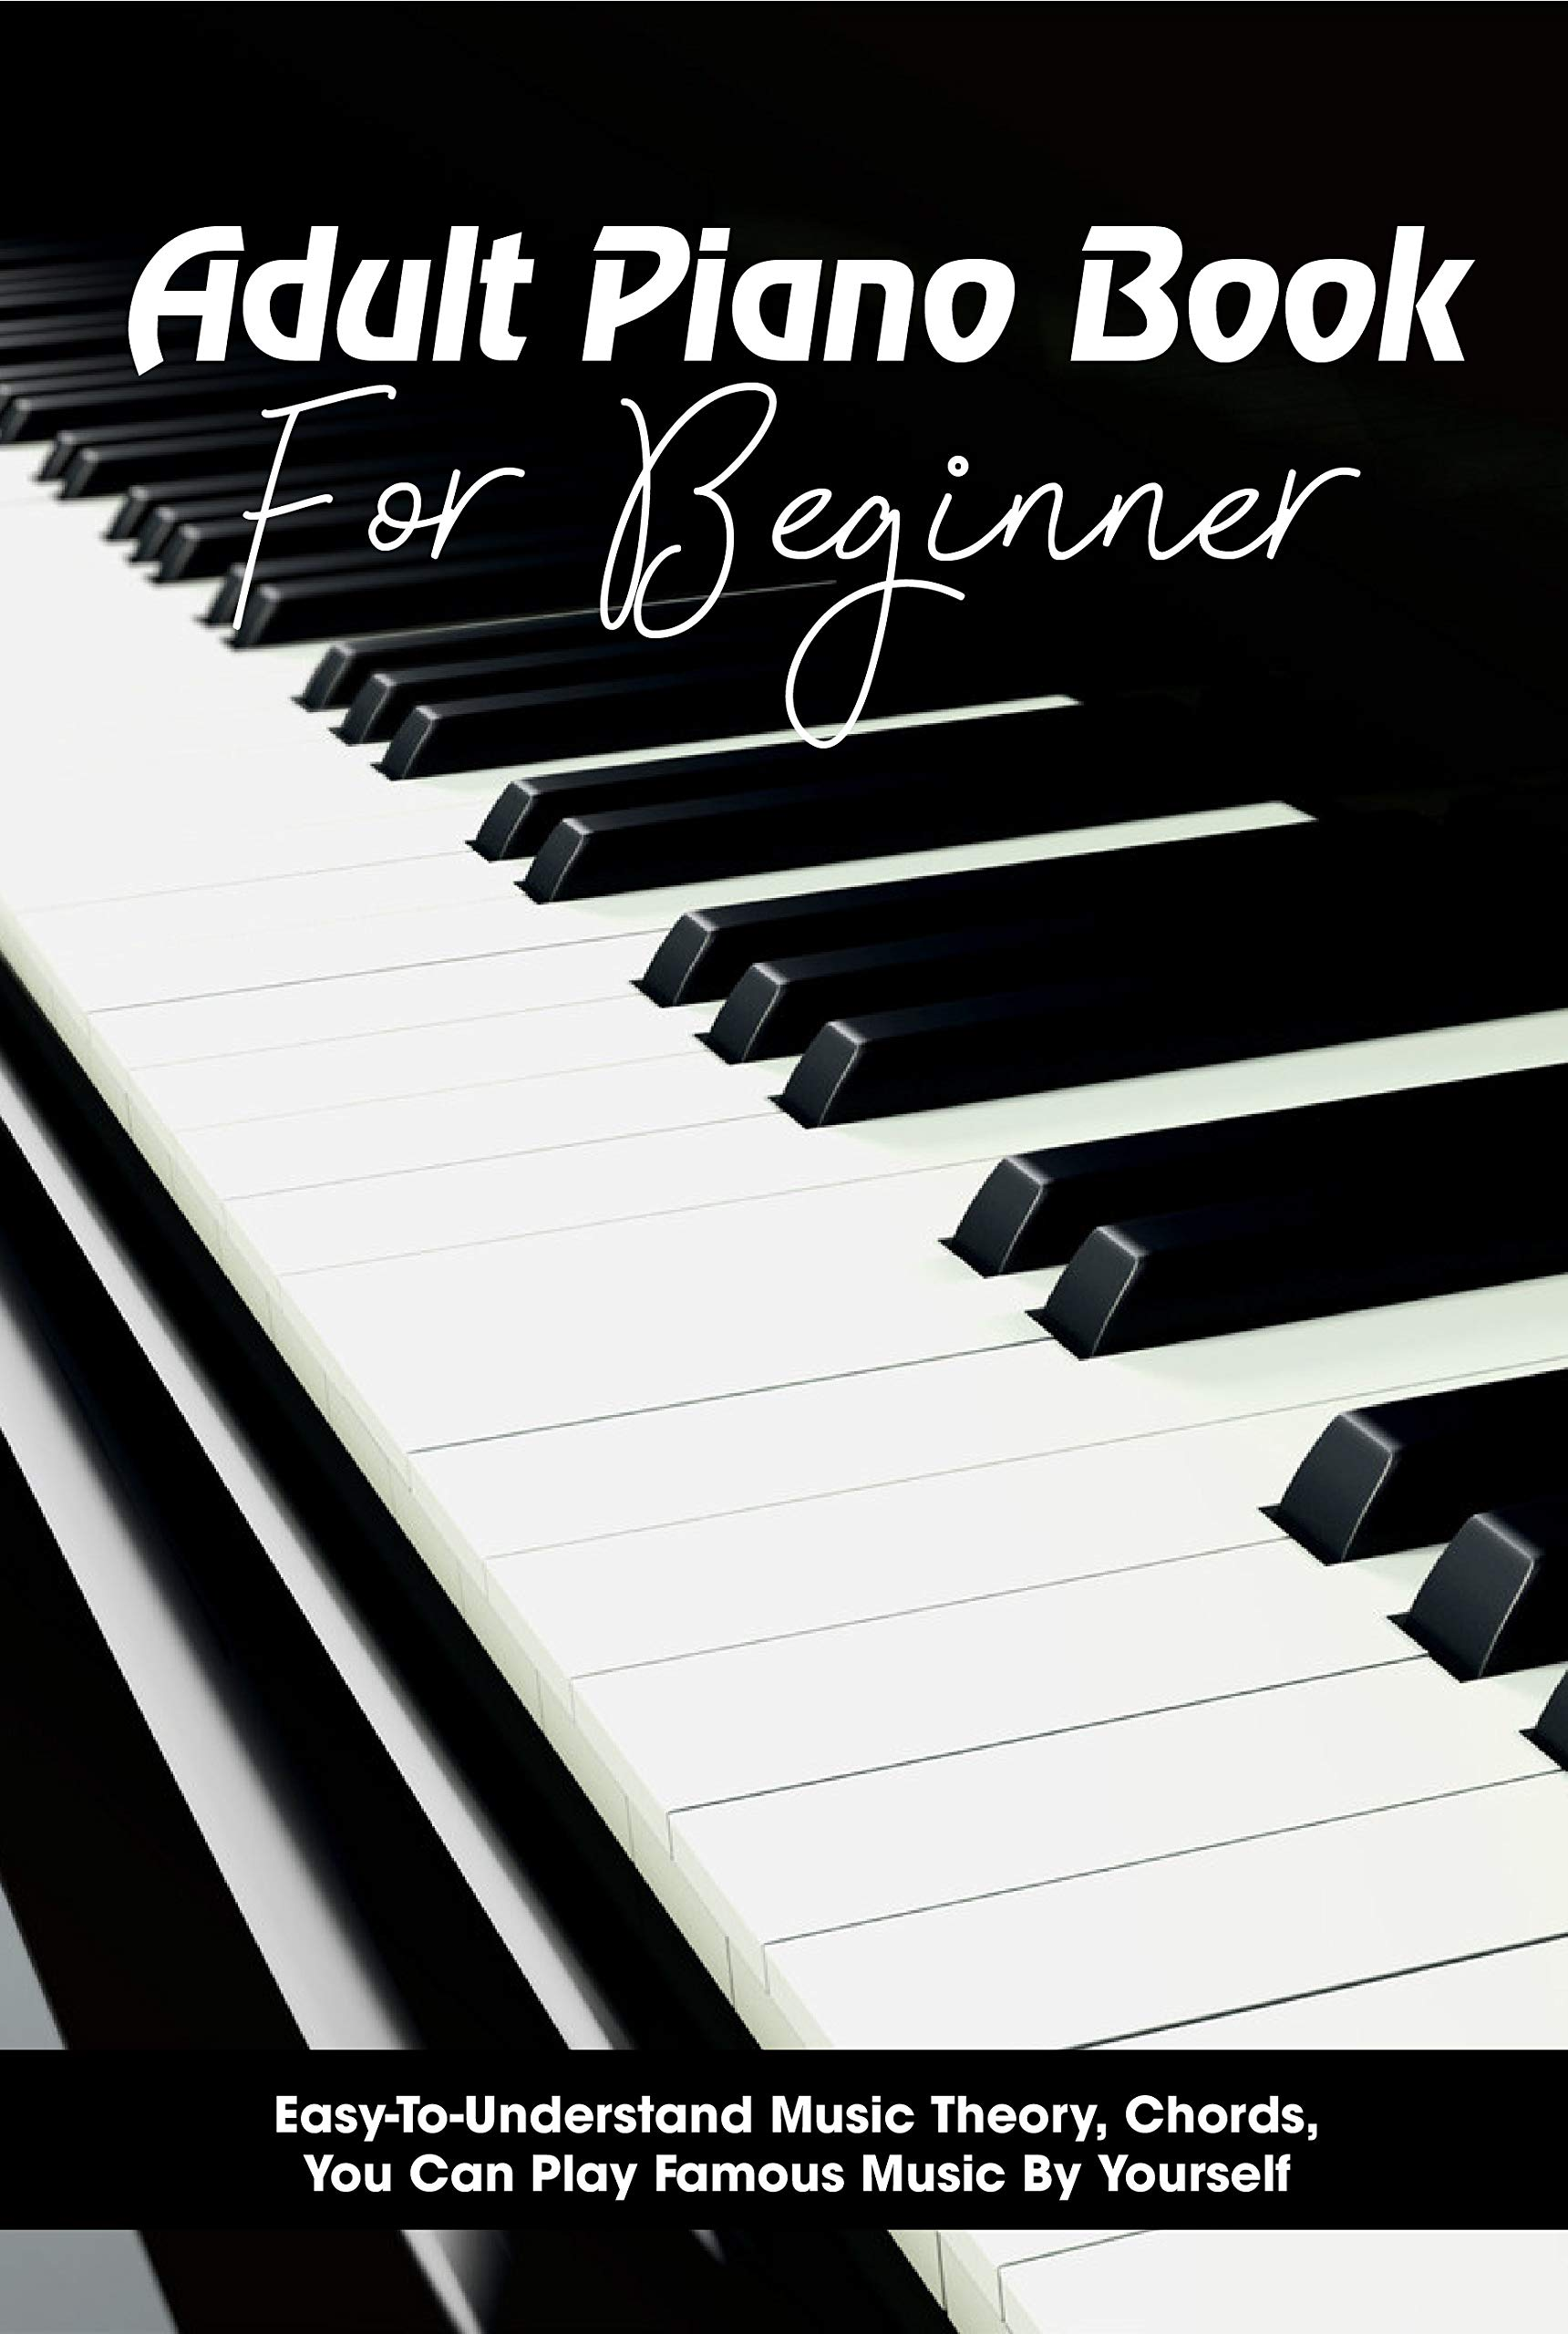 Adult Piano Book For Beginner Easy-to-understand Music Theory, Chords, You Can Play Famous Music By Yourself: Piano Books For Beginners